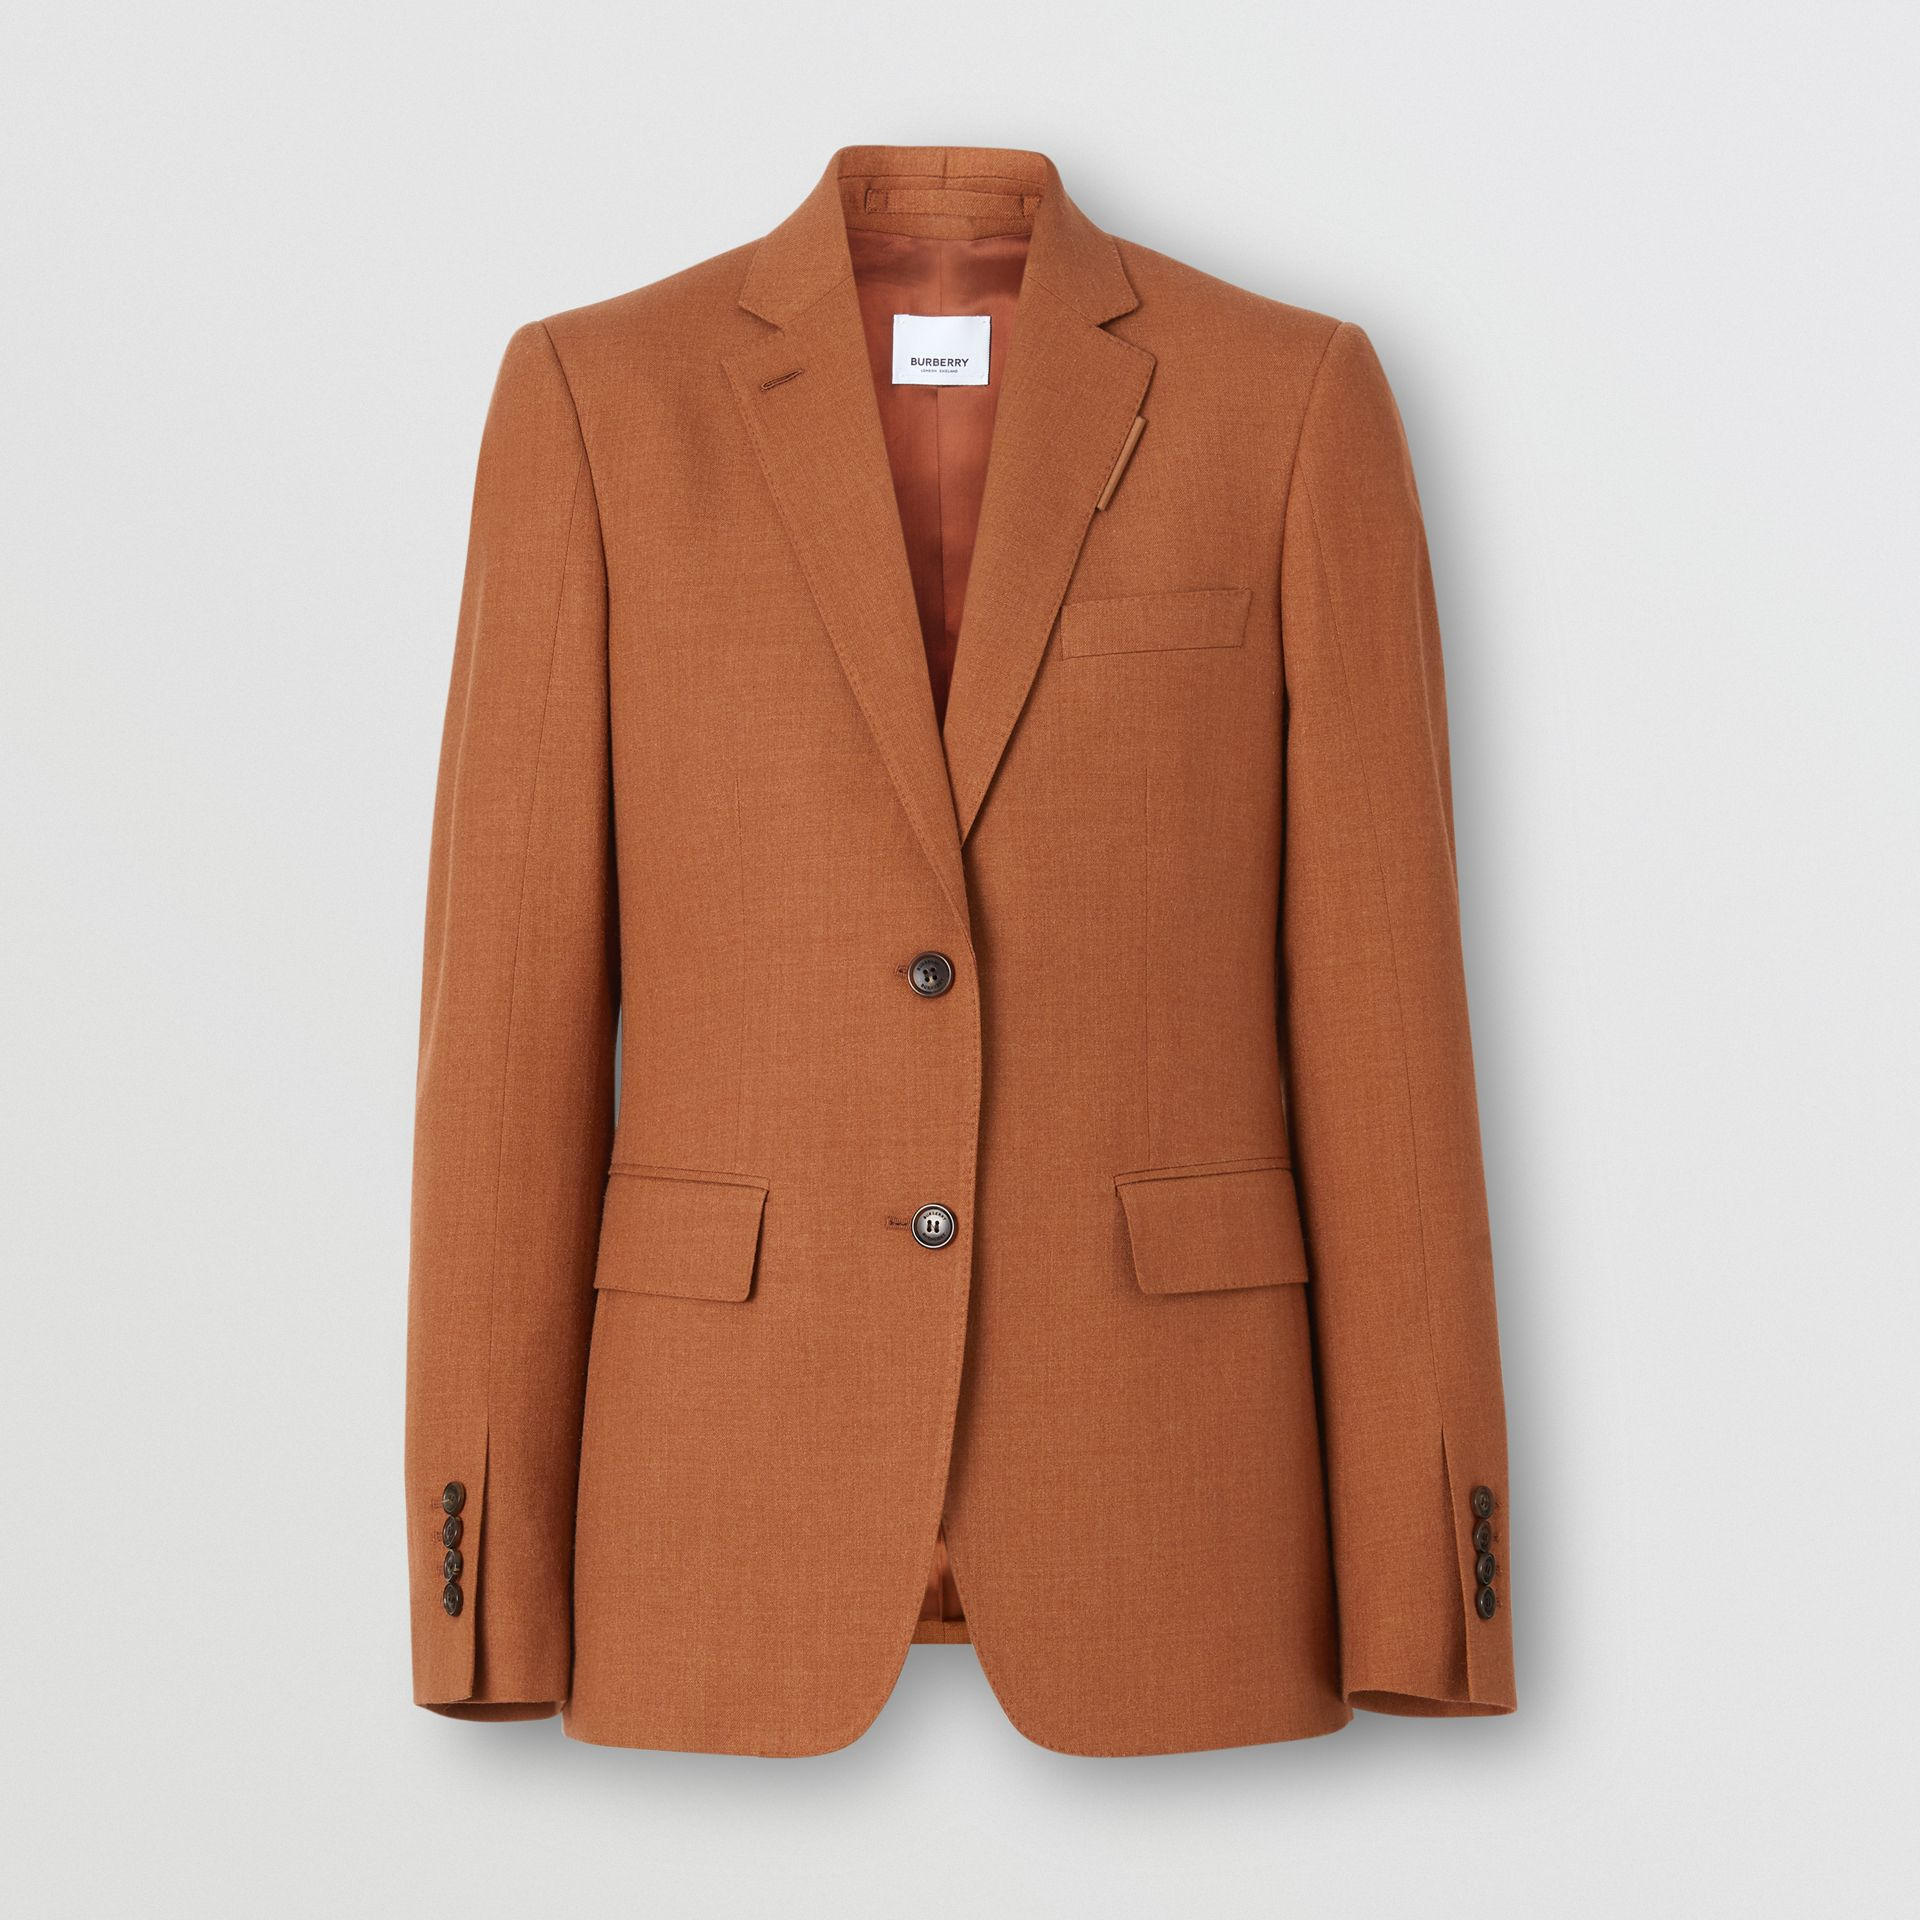 Wool, Silk and Cotton Blazer in Rust - Women | Burberry United States - gallery image 3